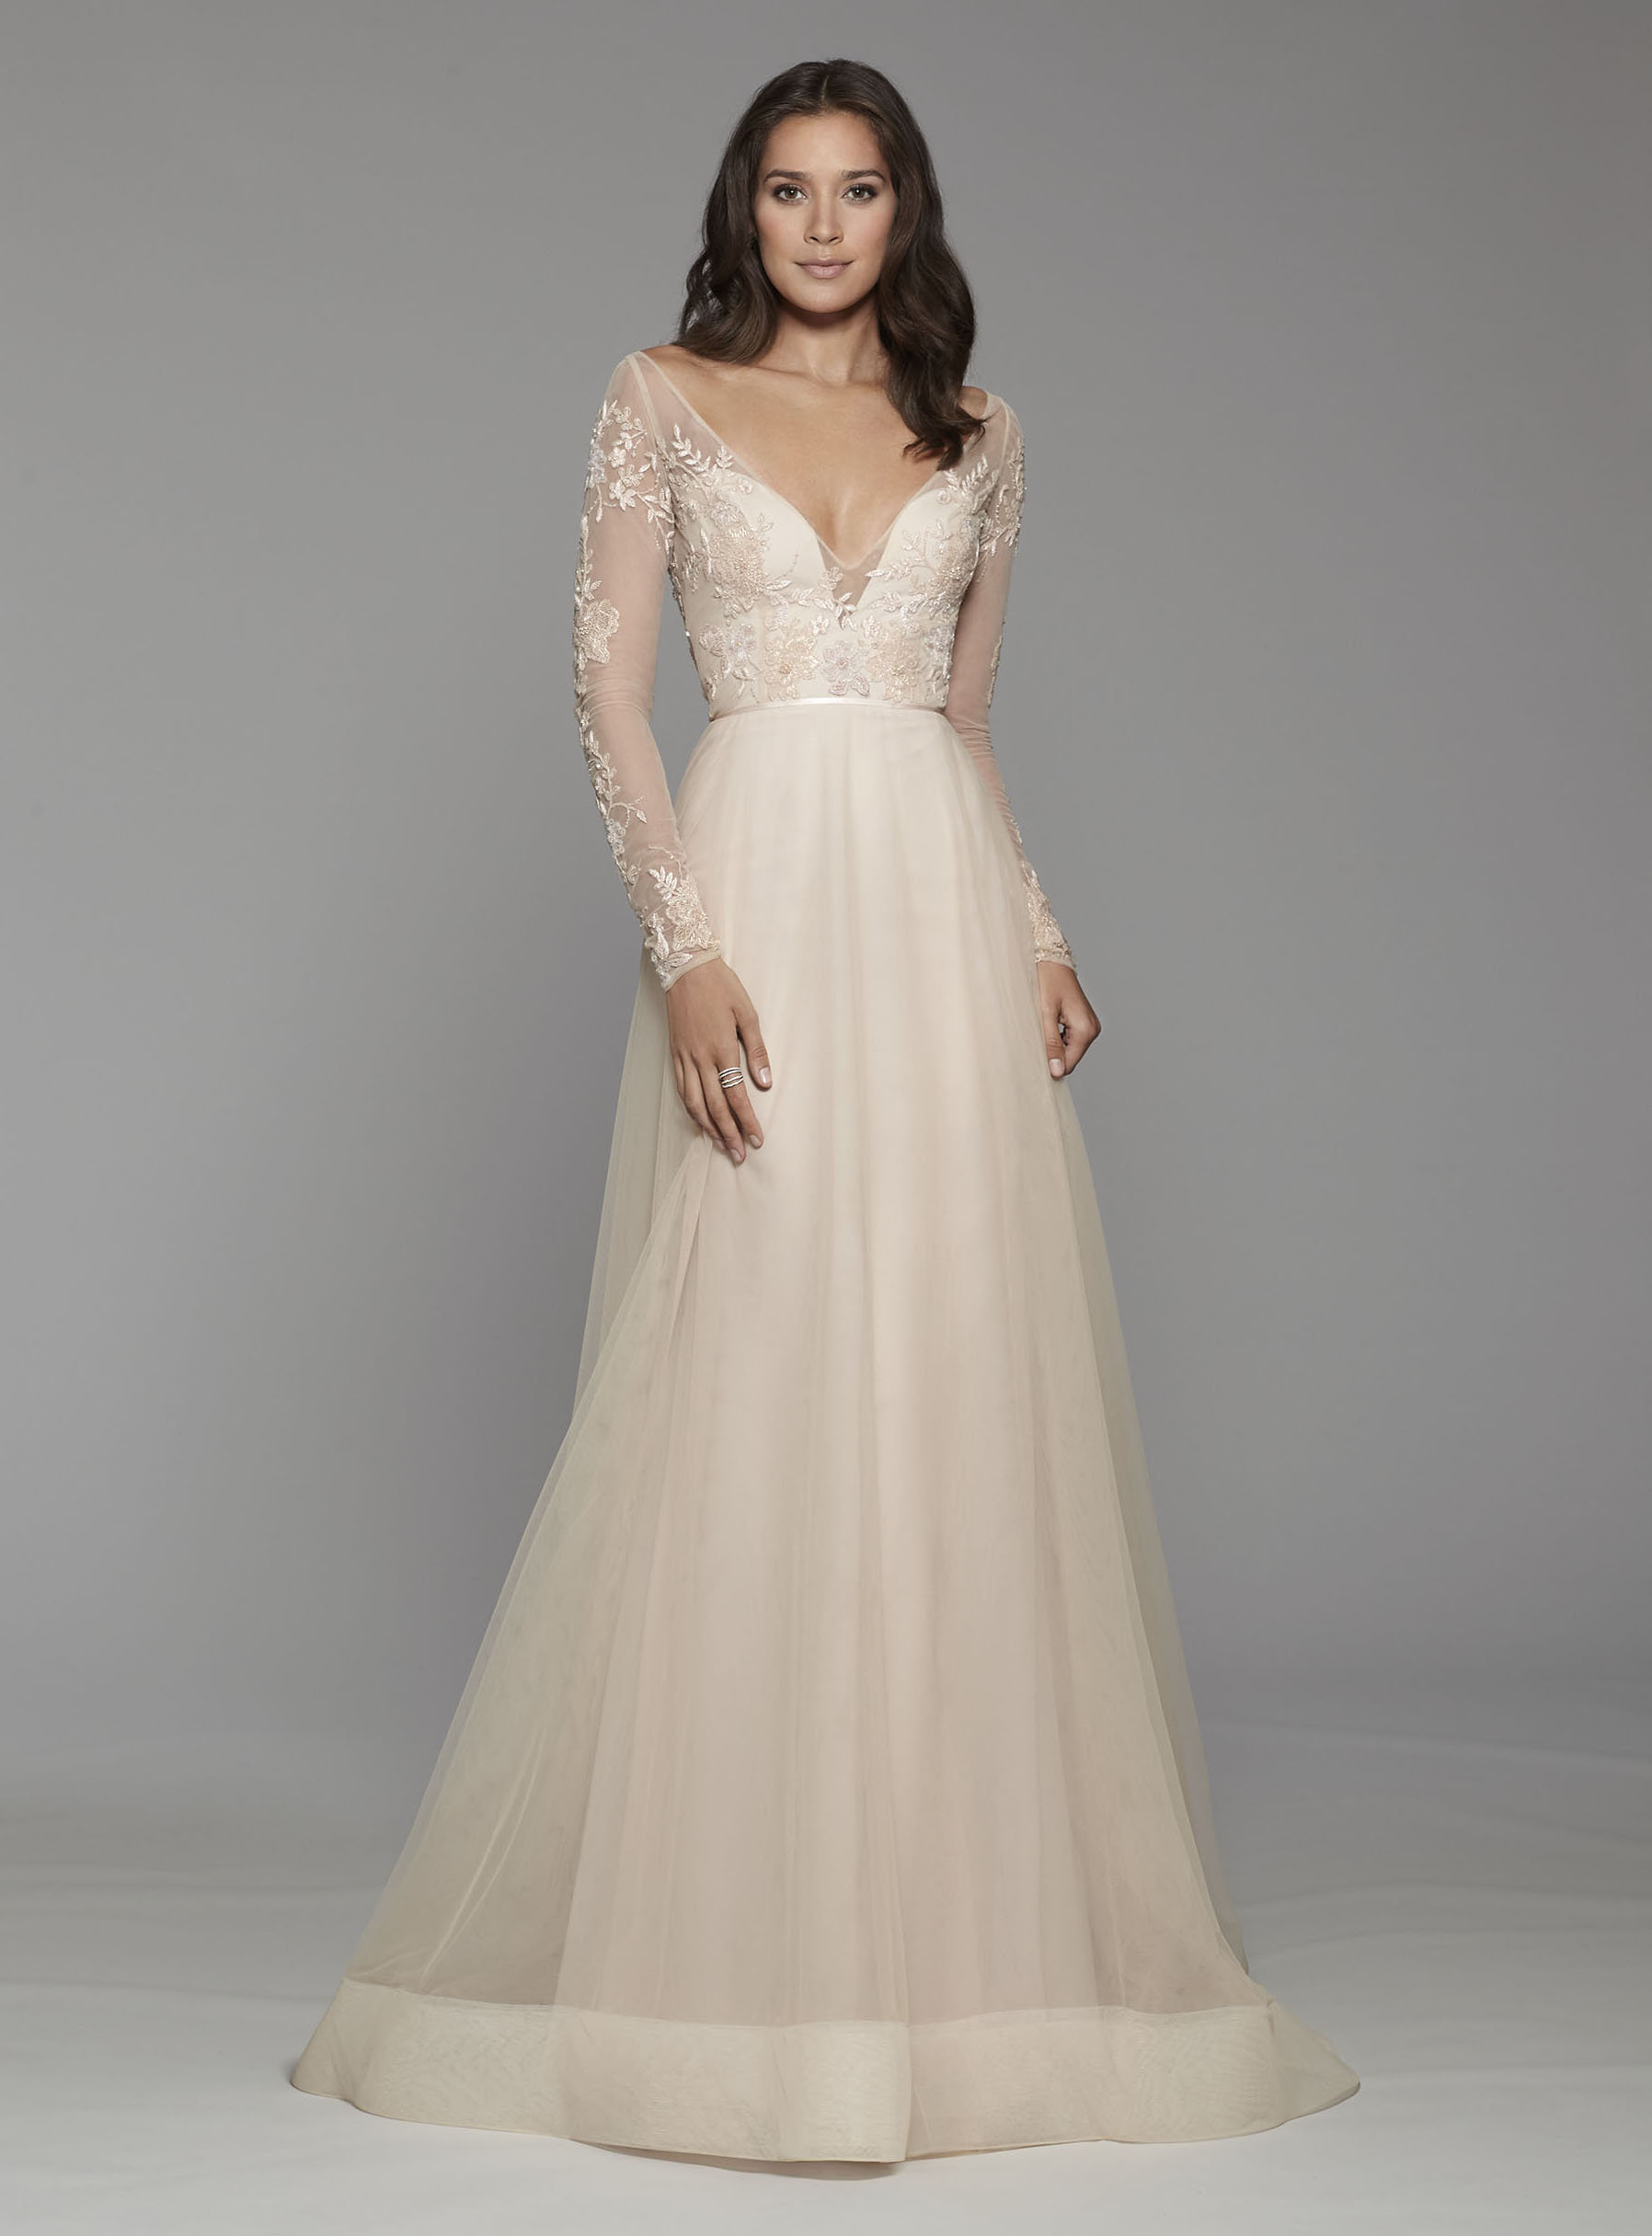 Category: Dresses | Kleinfeld Bridal